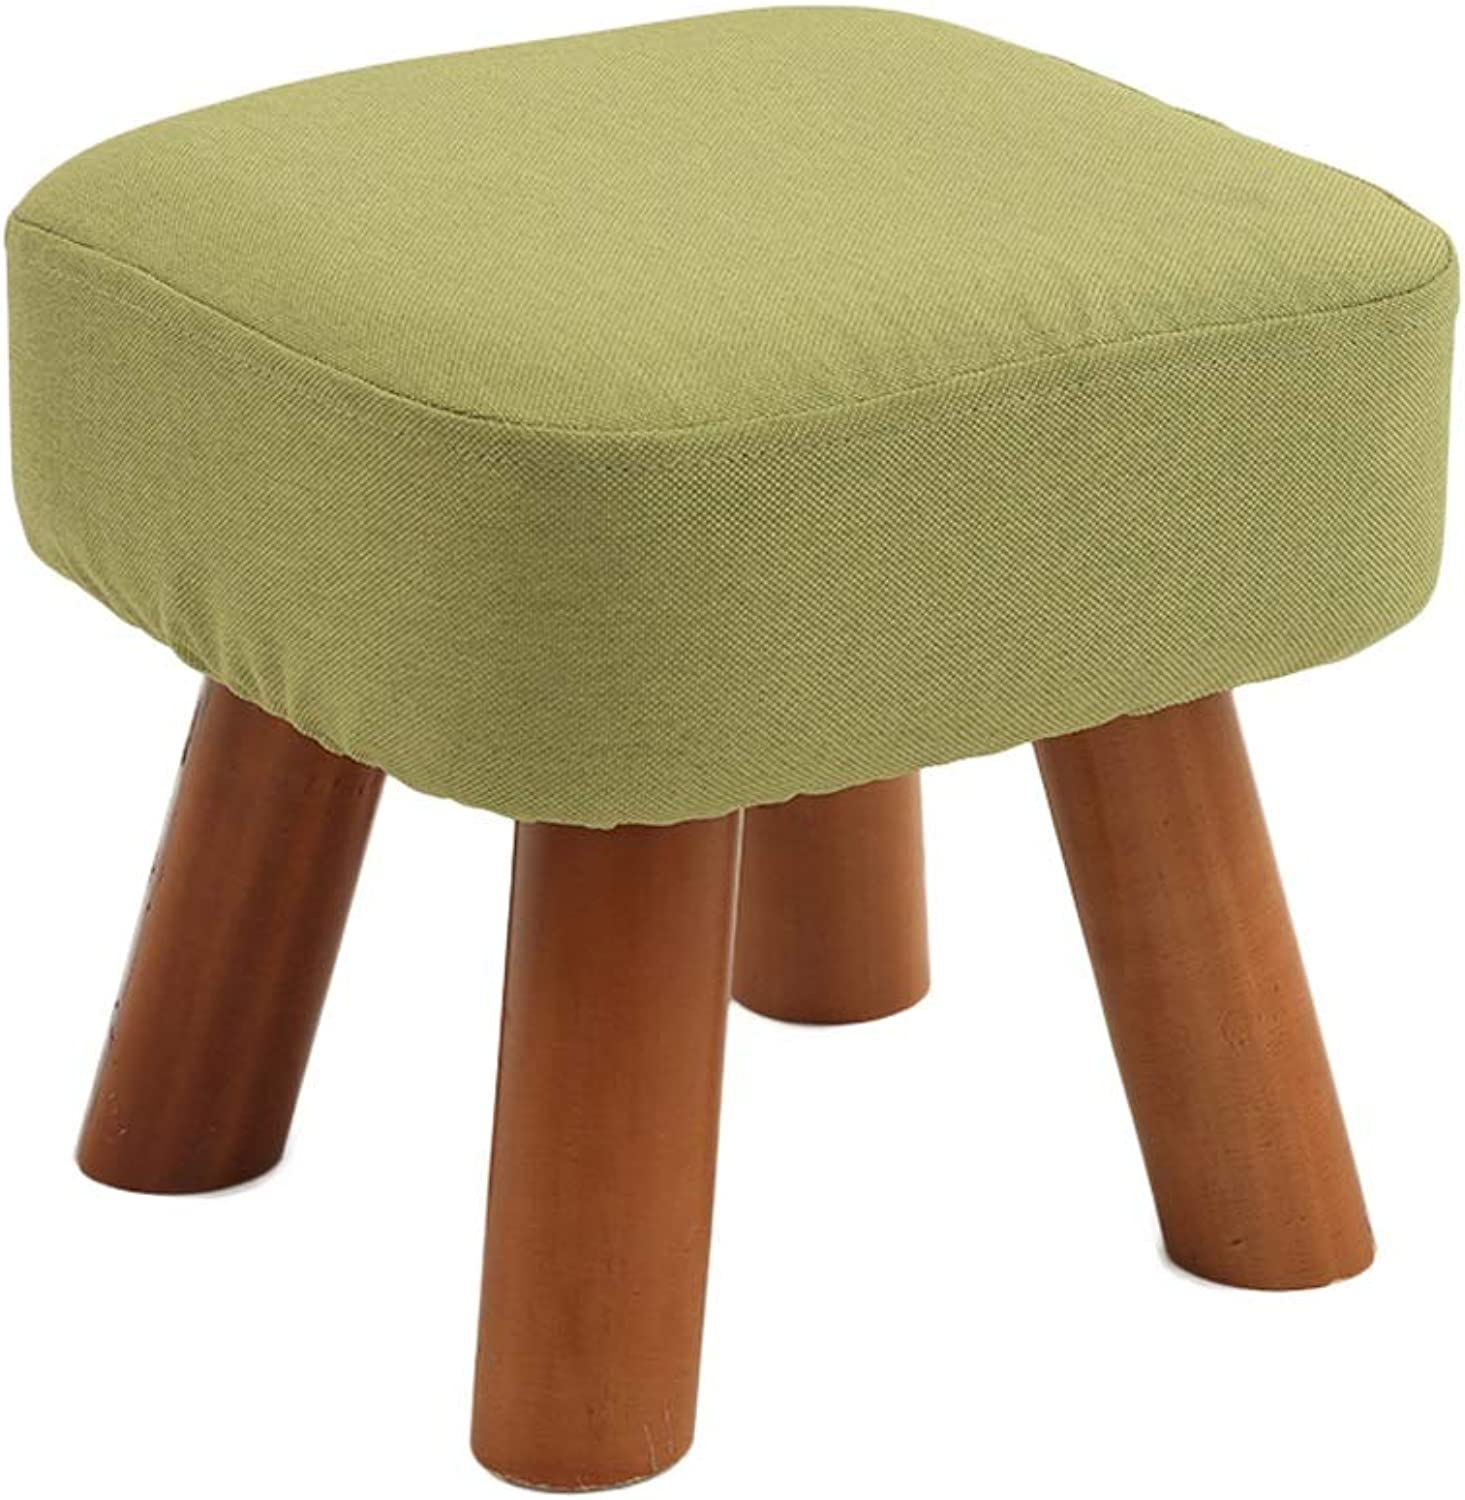 Solid Wood Small Stool - Change shoes Bench - Coffee Table Sofa Stool - Fabric Small Bench - Home Stool - Load Capacity 100kg (color   28×28×25cm Green)